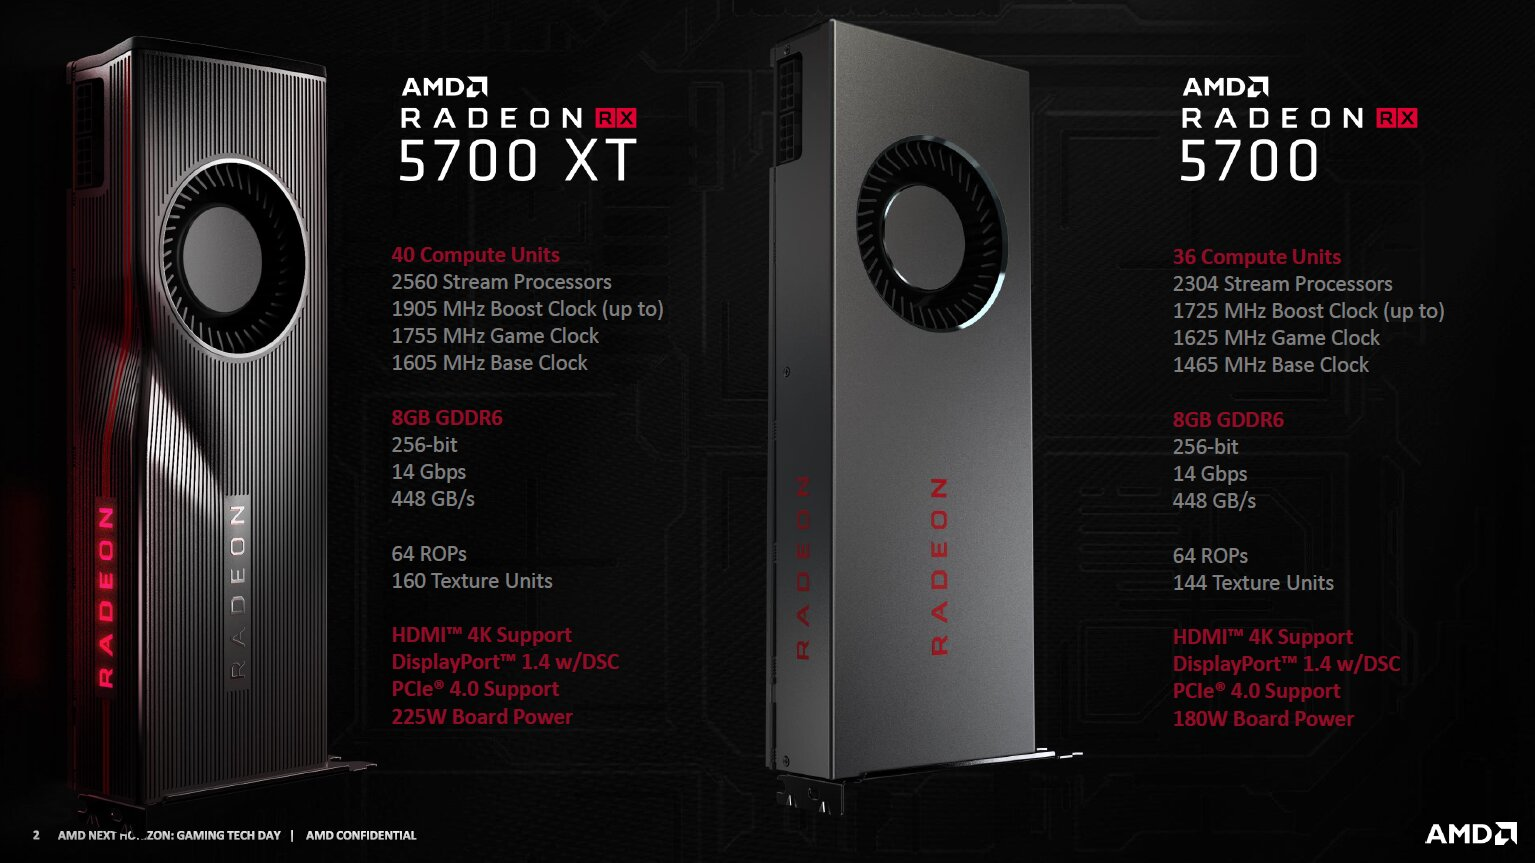 AMD Radeon RX 5700 XT RX 5700 Comparison E3 2019